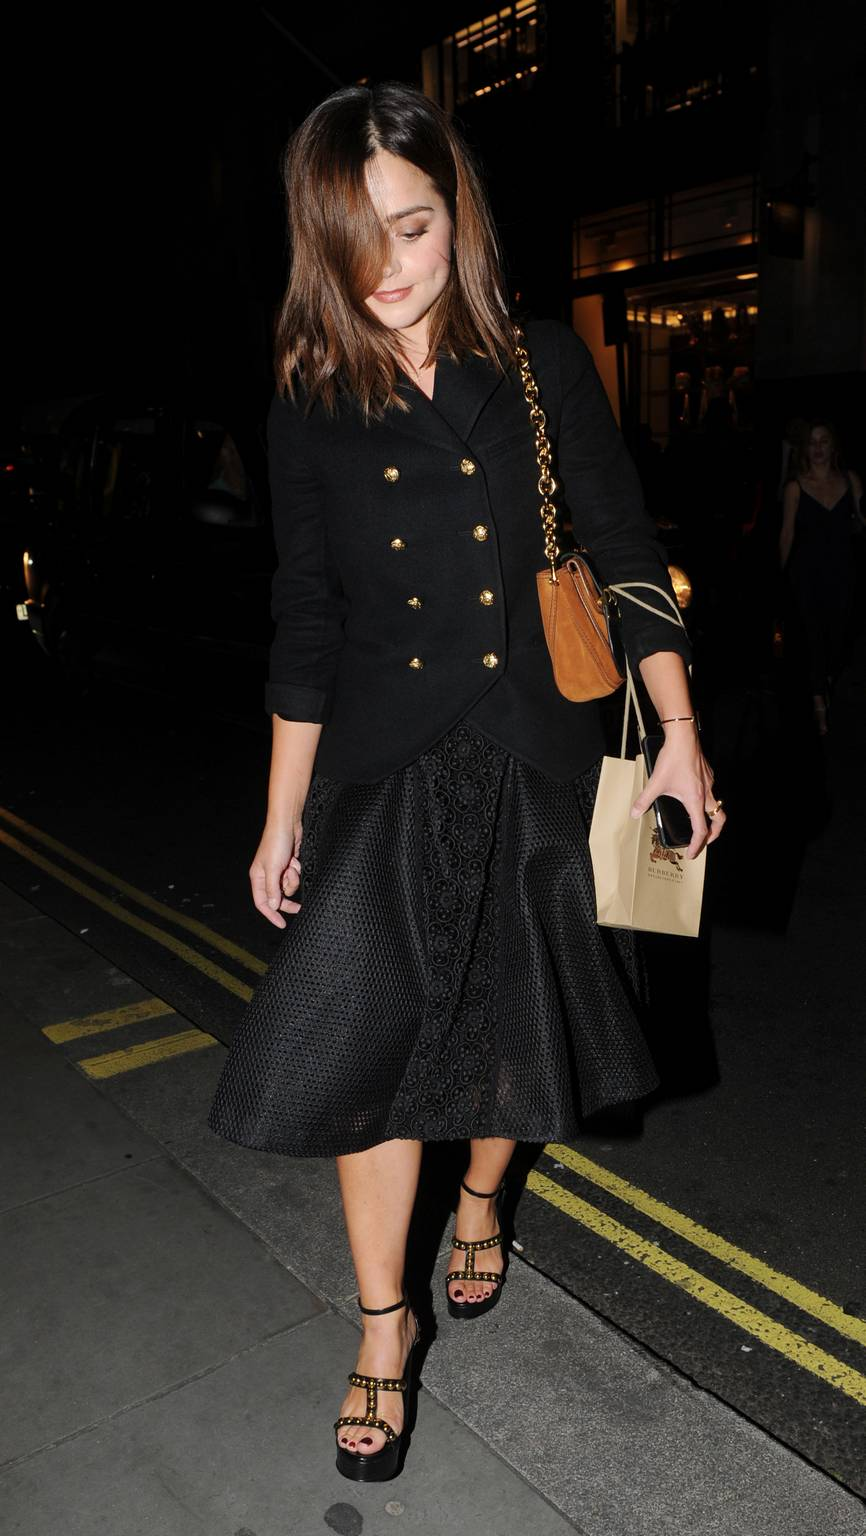 Jenna Louise Coleman – My Burberry Black Launch Event in London